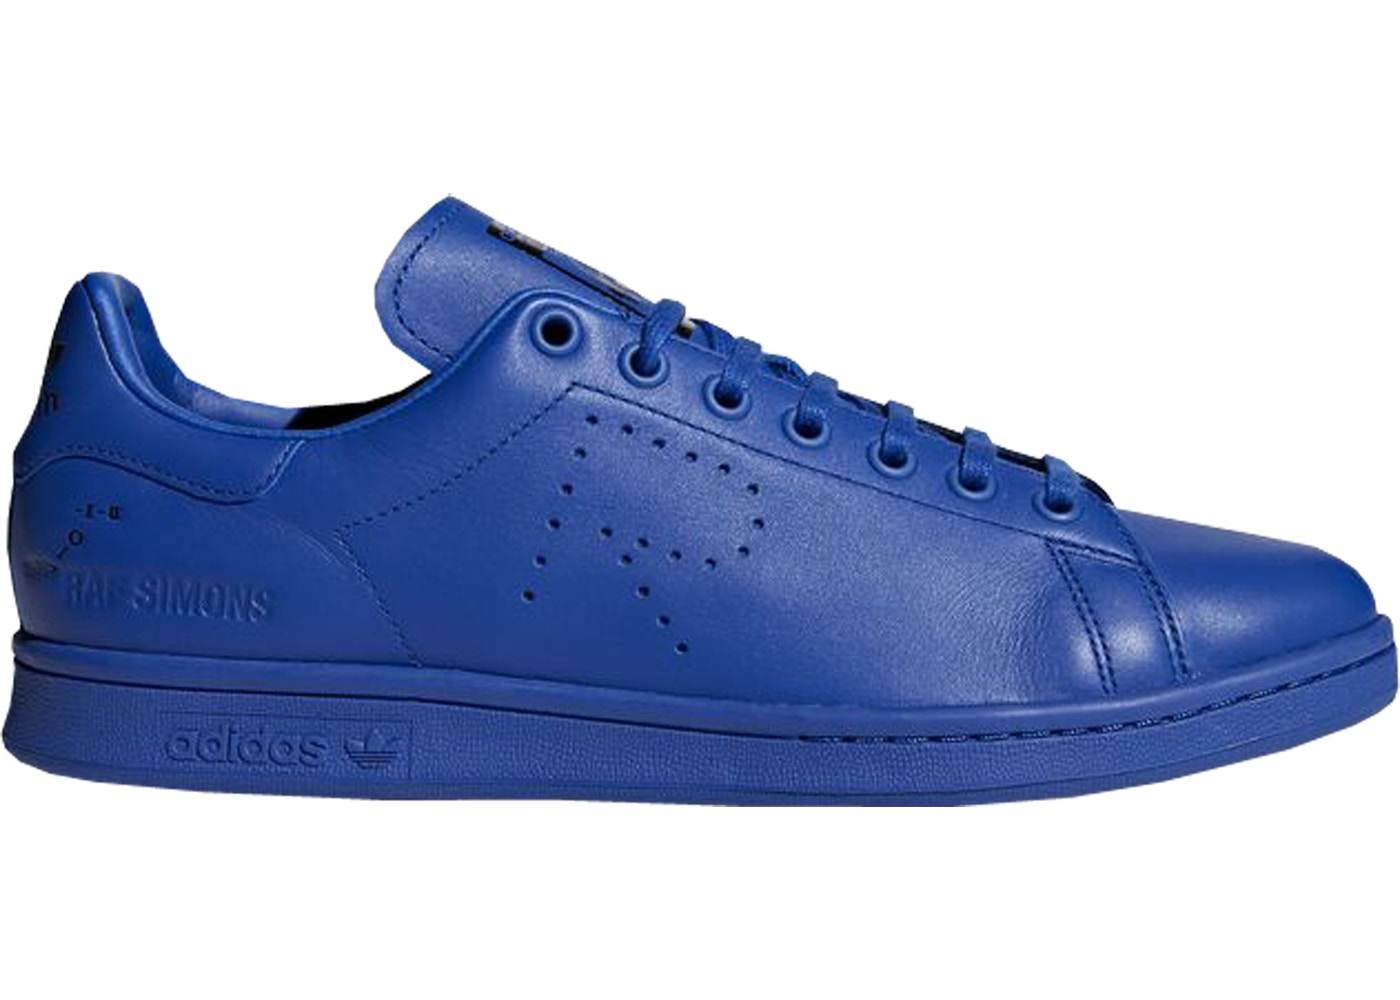 06d57f06c874 adidas Stan Smith Raf Simons Powder Blue - F34260